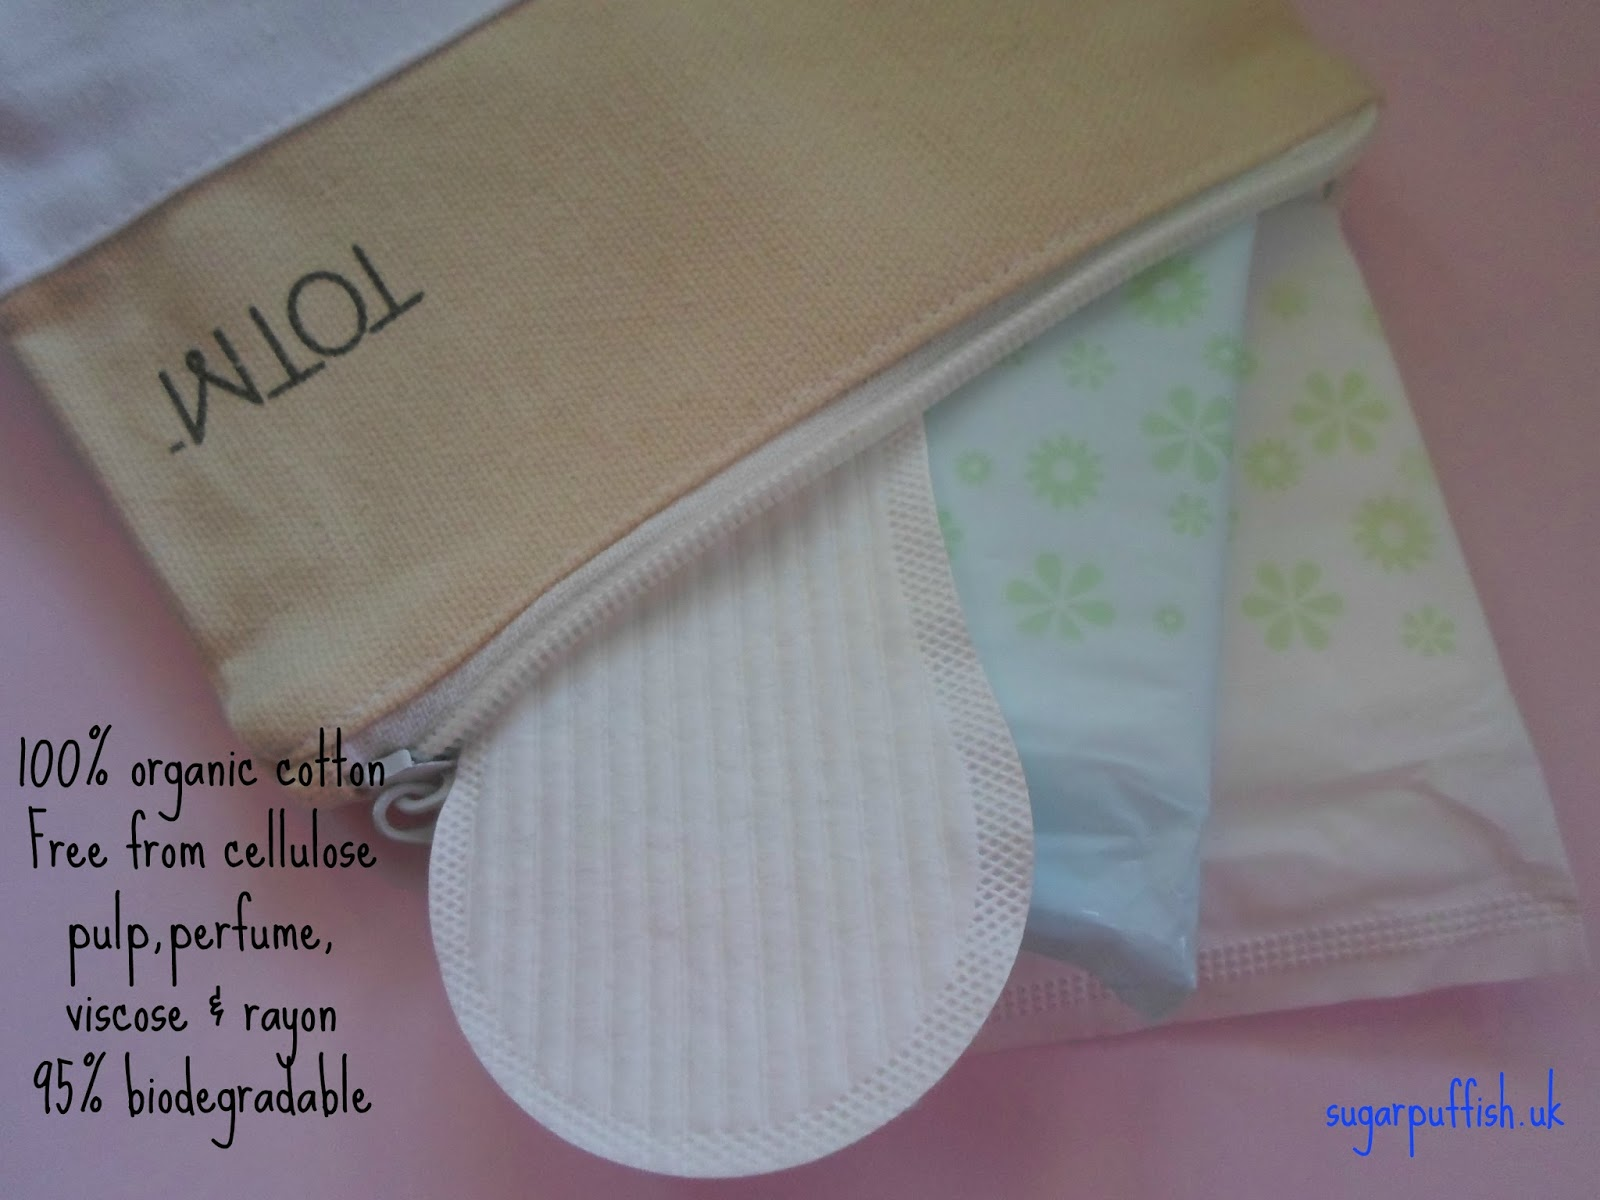 TOTM 100% organic cotton sanitary products